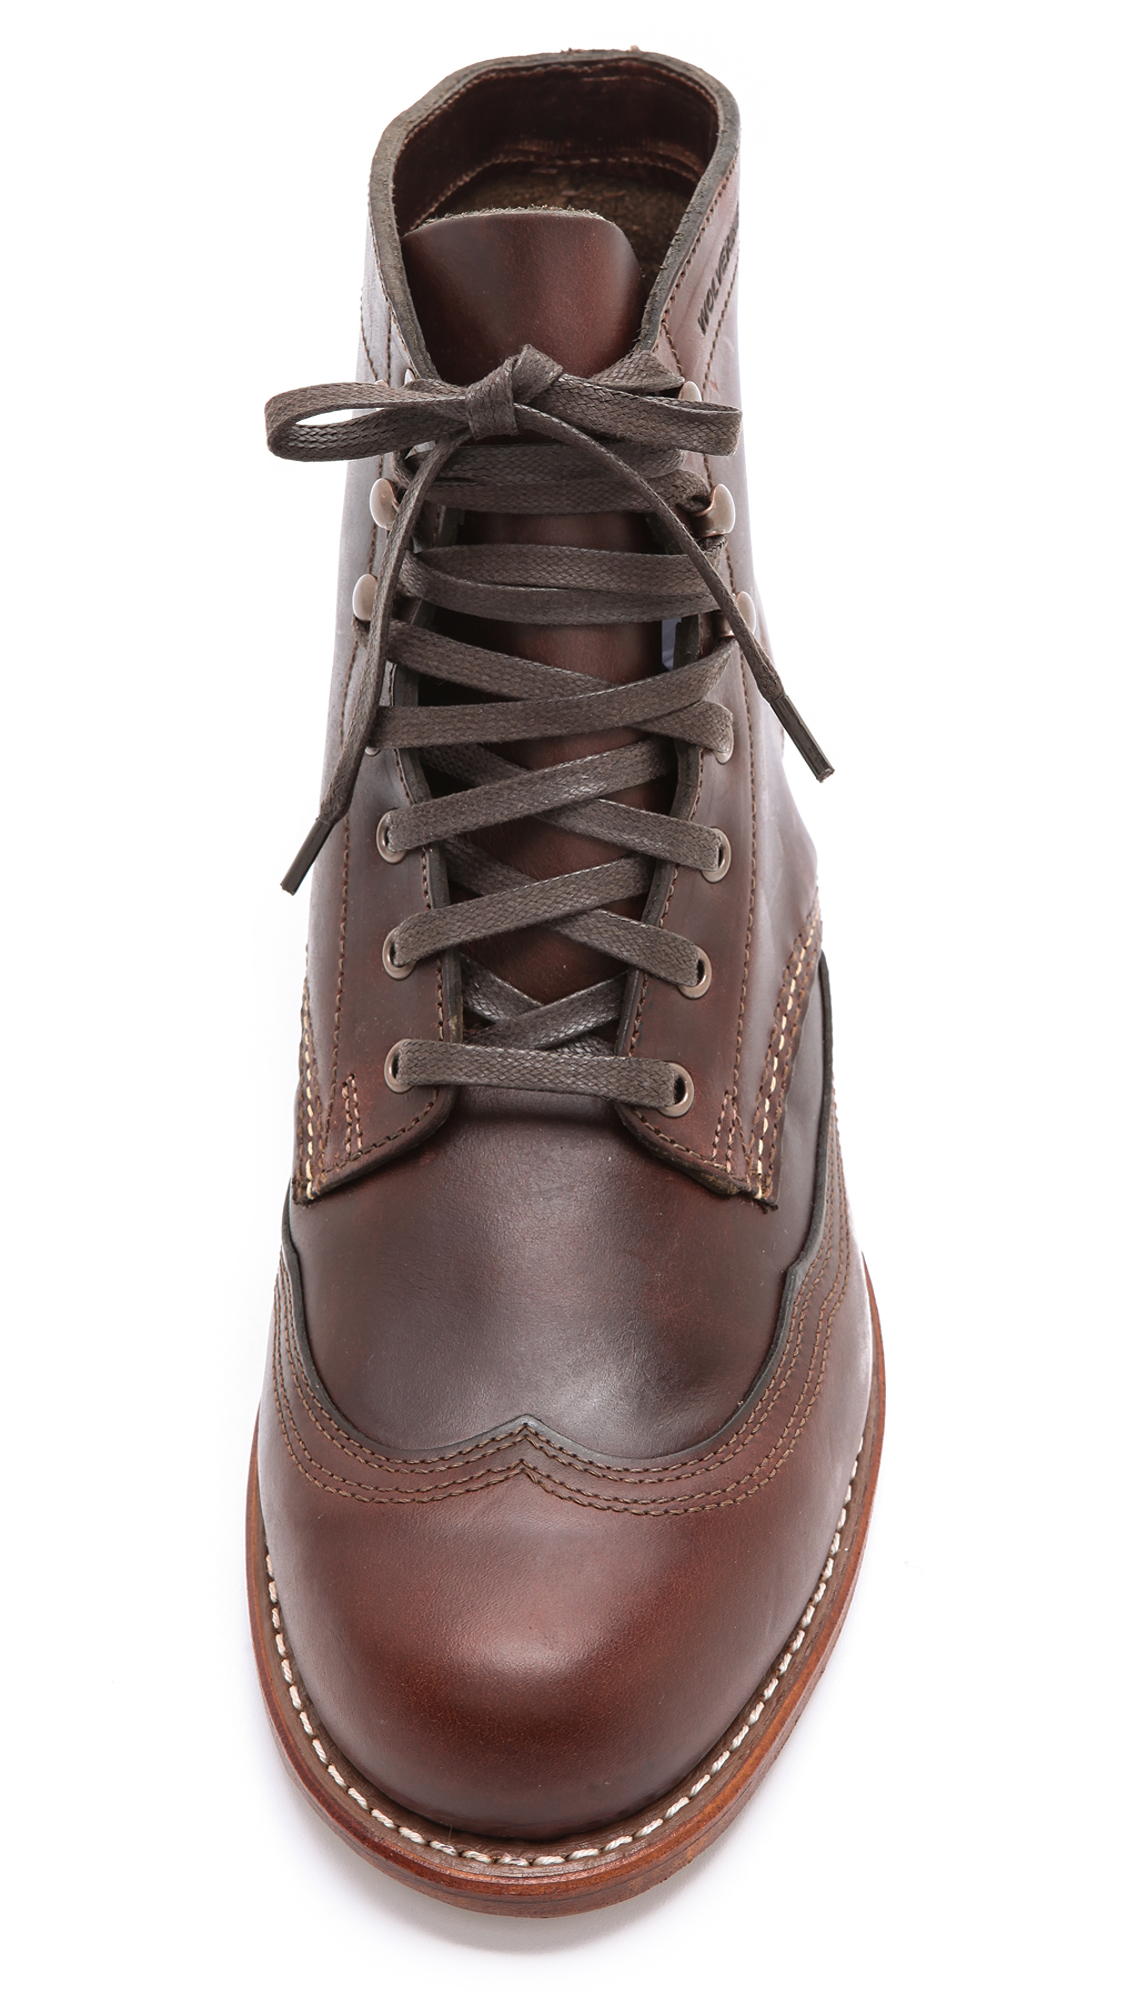 Men's Wolverine Addison 1000 Mile Wingtip Boots Review – USA Made Chromexcel Footwear forecast